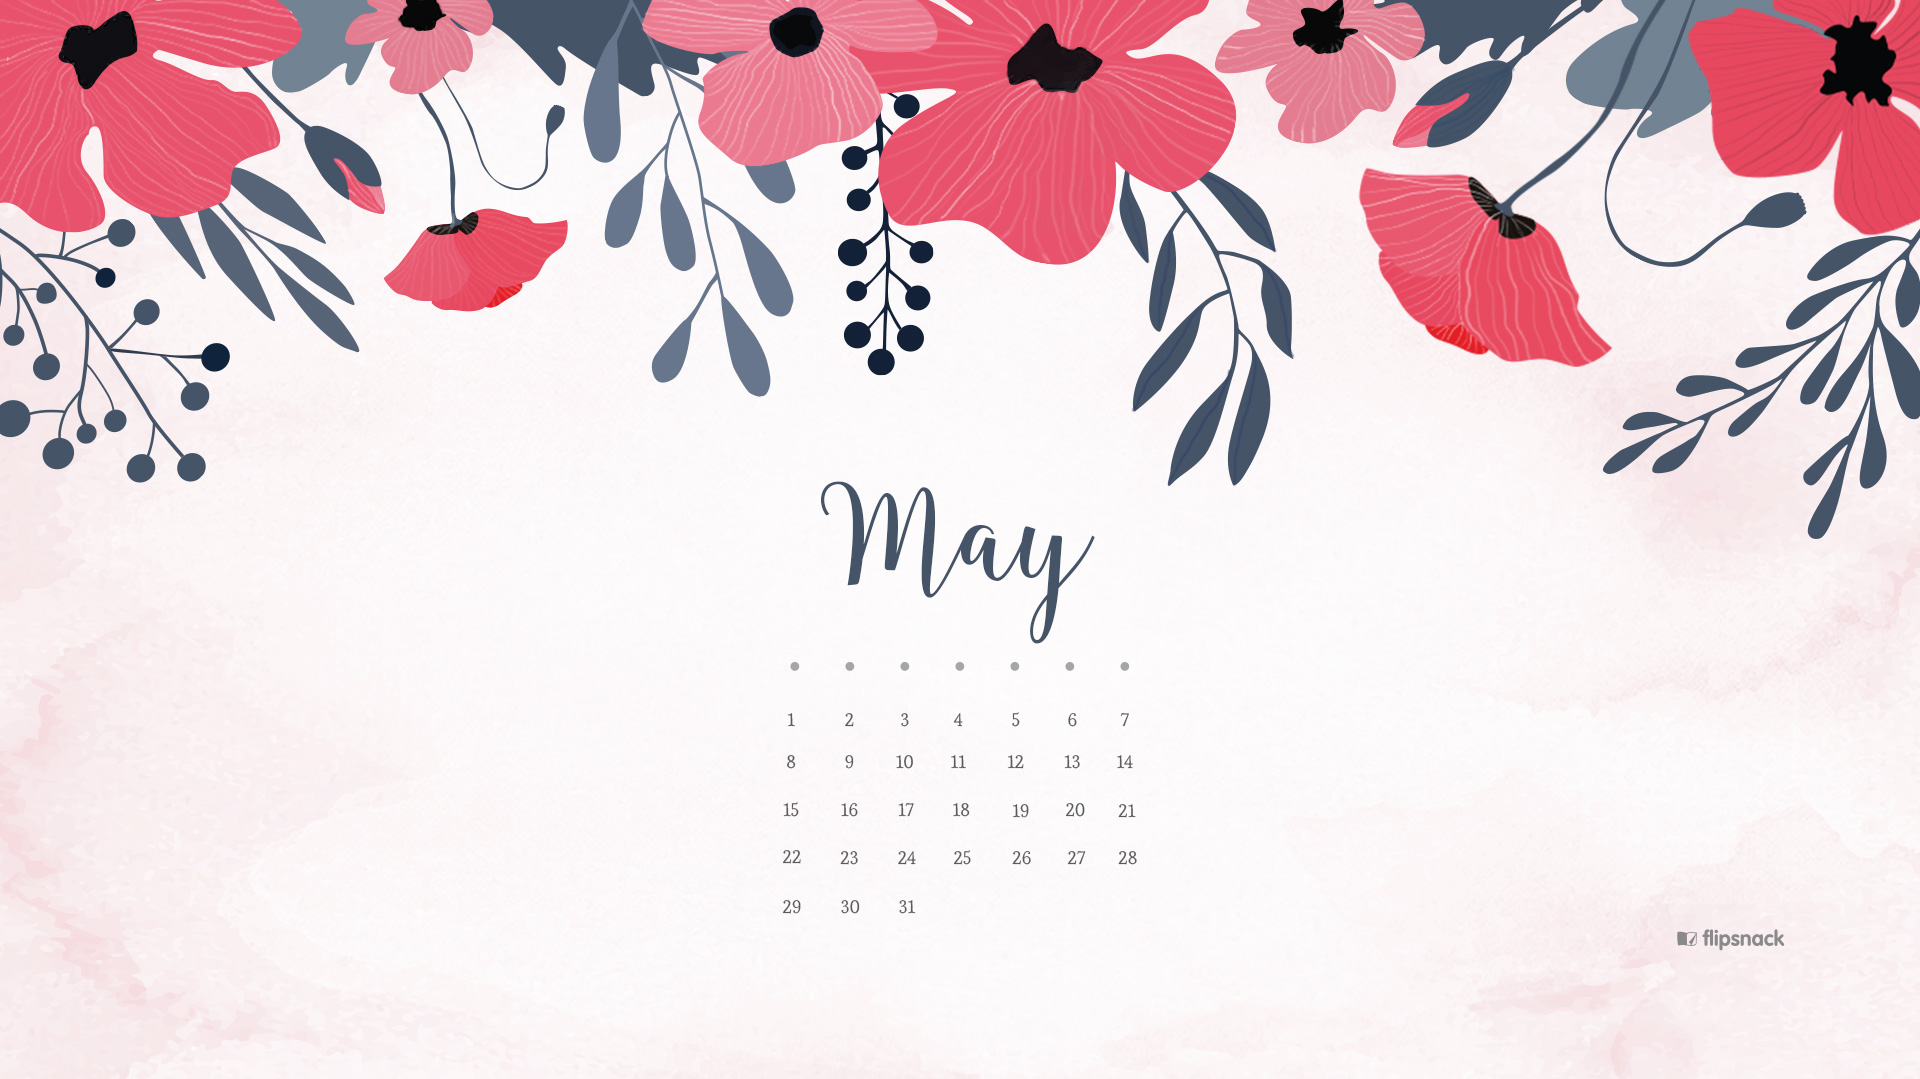 May 2019 Calendar Wallpaper 1920x1079